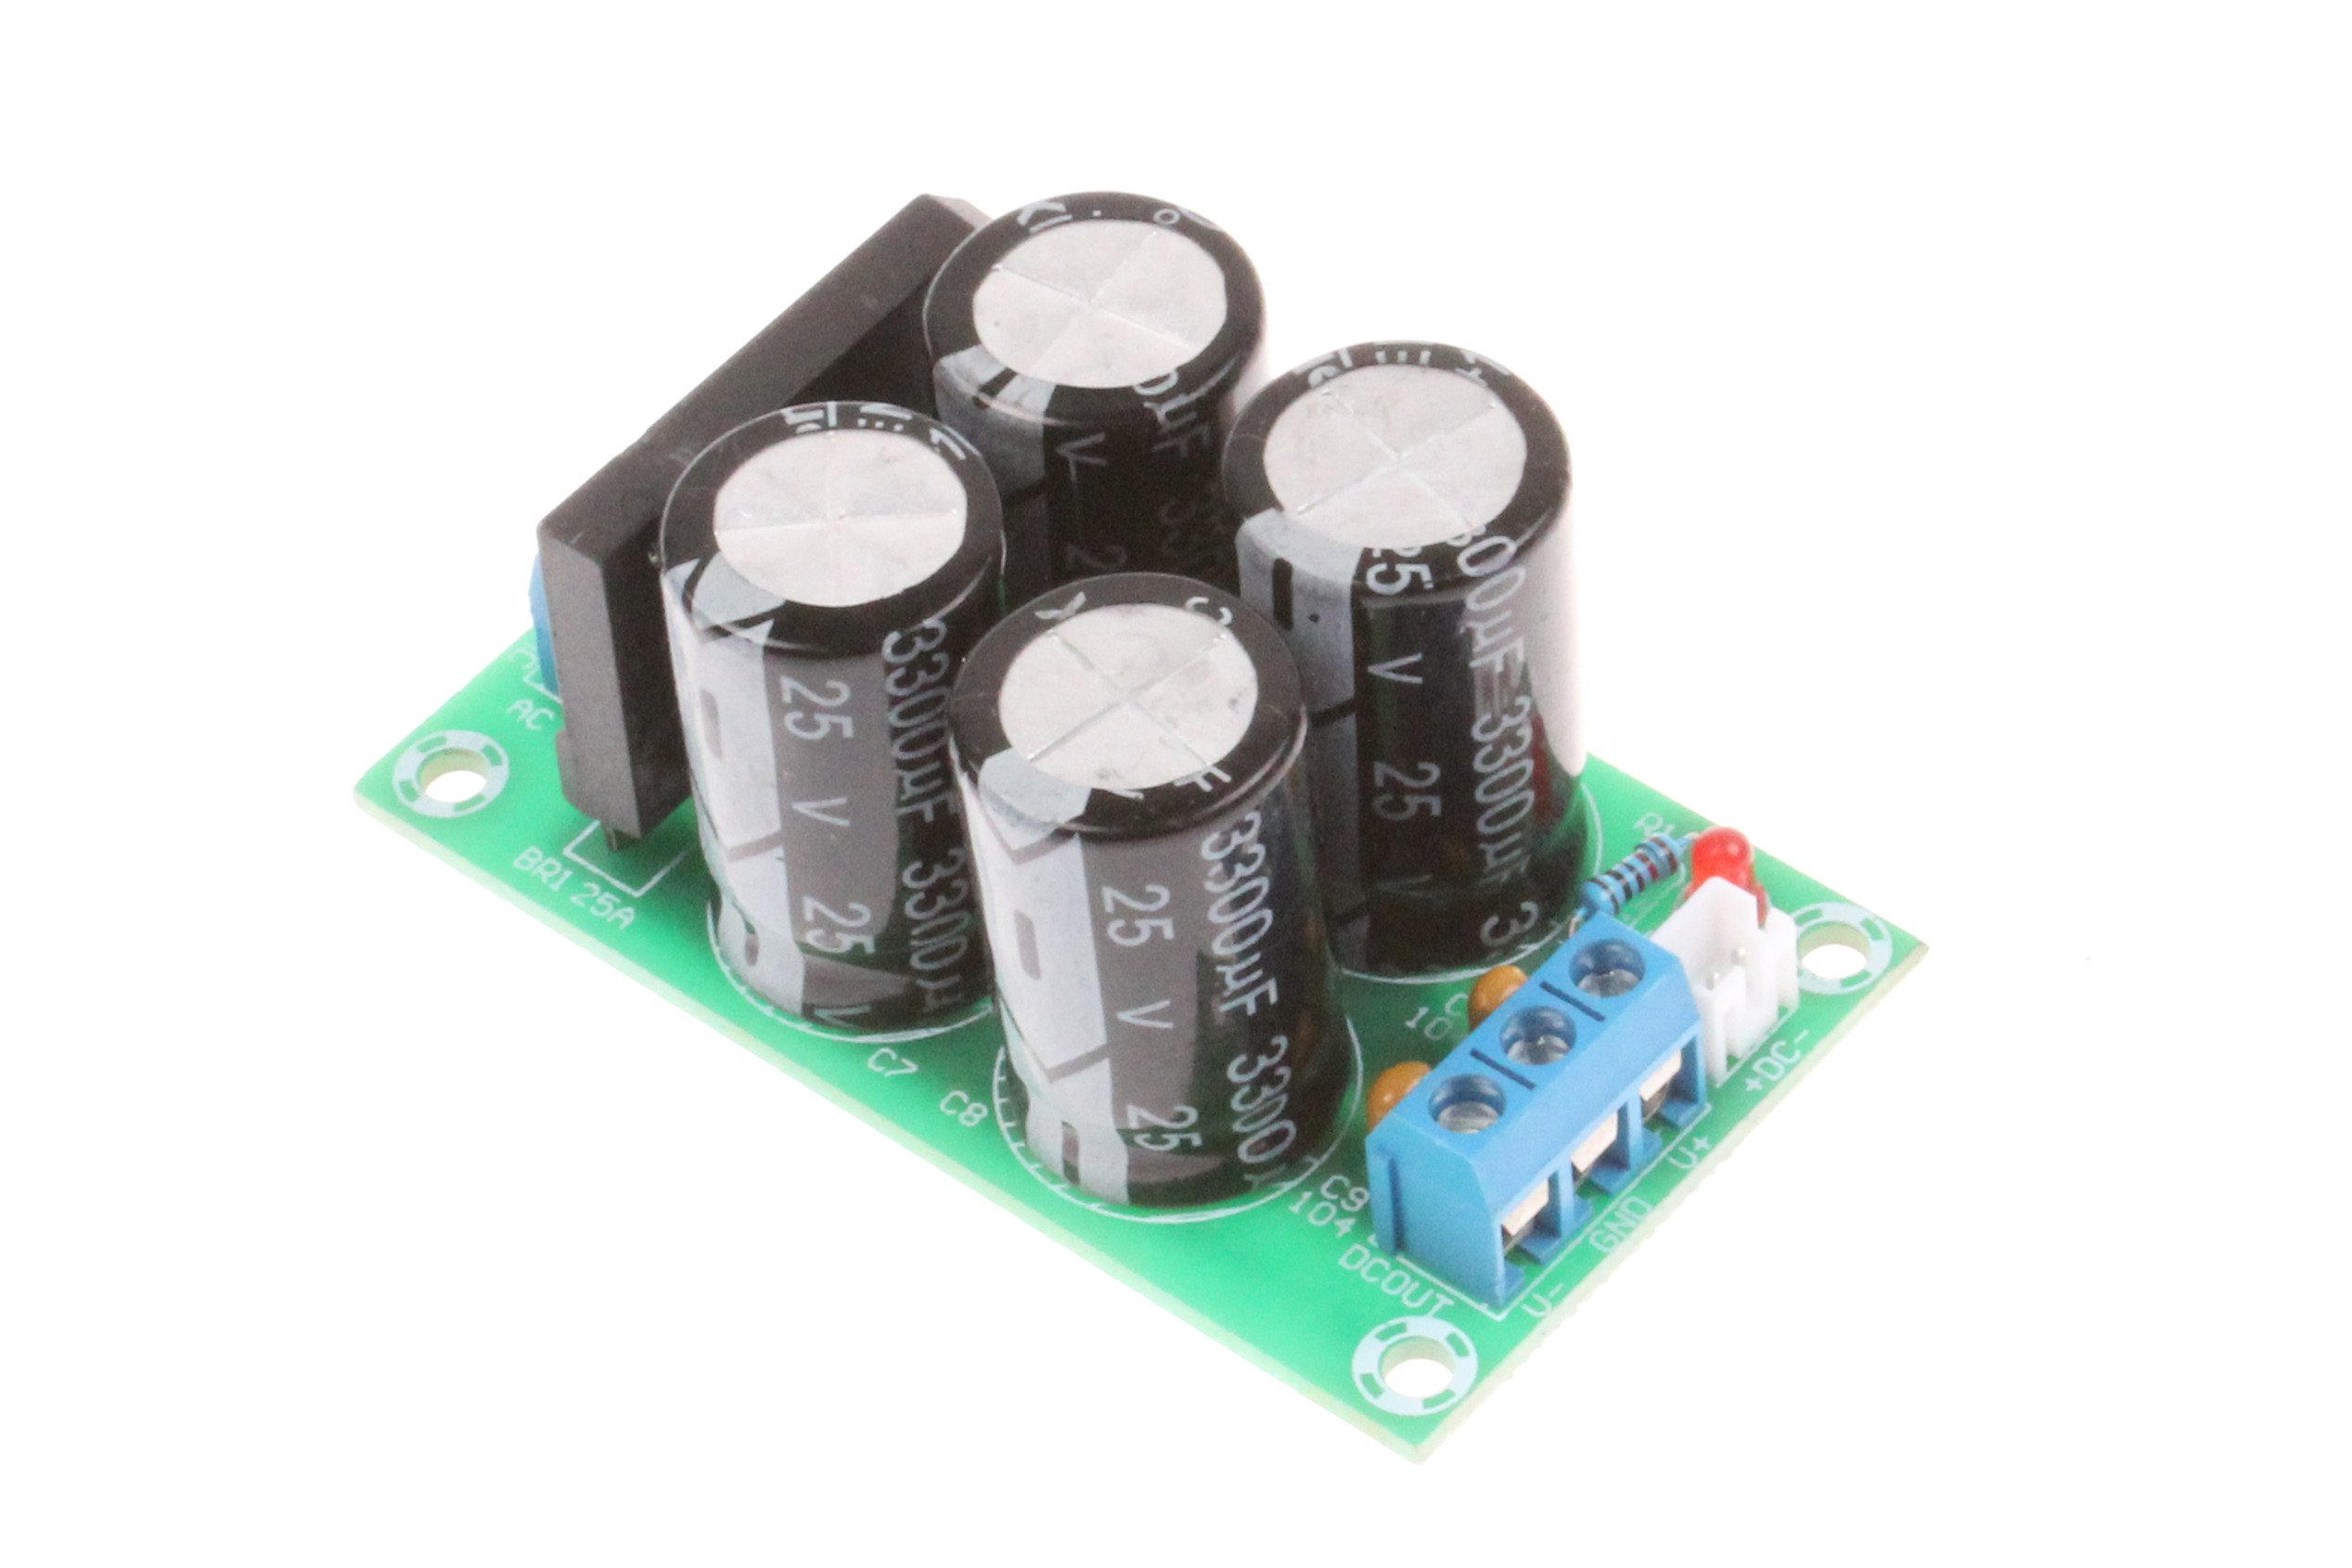 25A Dual Power Rectifier Filter Board AC 9-17V / DC ± 12-24V Power Amplifier Power Supply Rectifier Board Suitable for LM1875 TDA2030 TDA7294 LM3886 and Other Medium-Low Power Amplifier